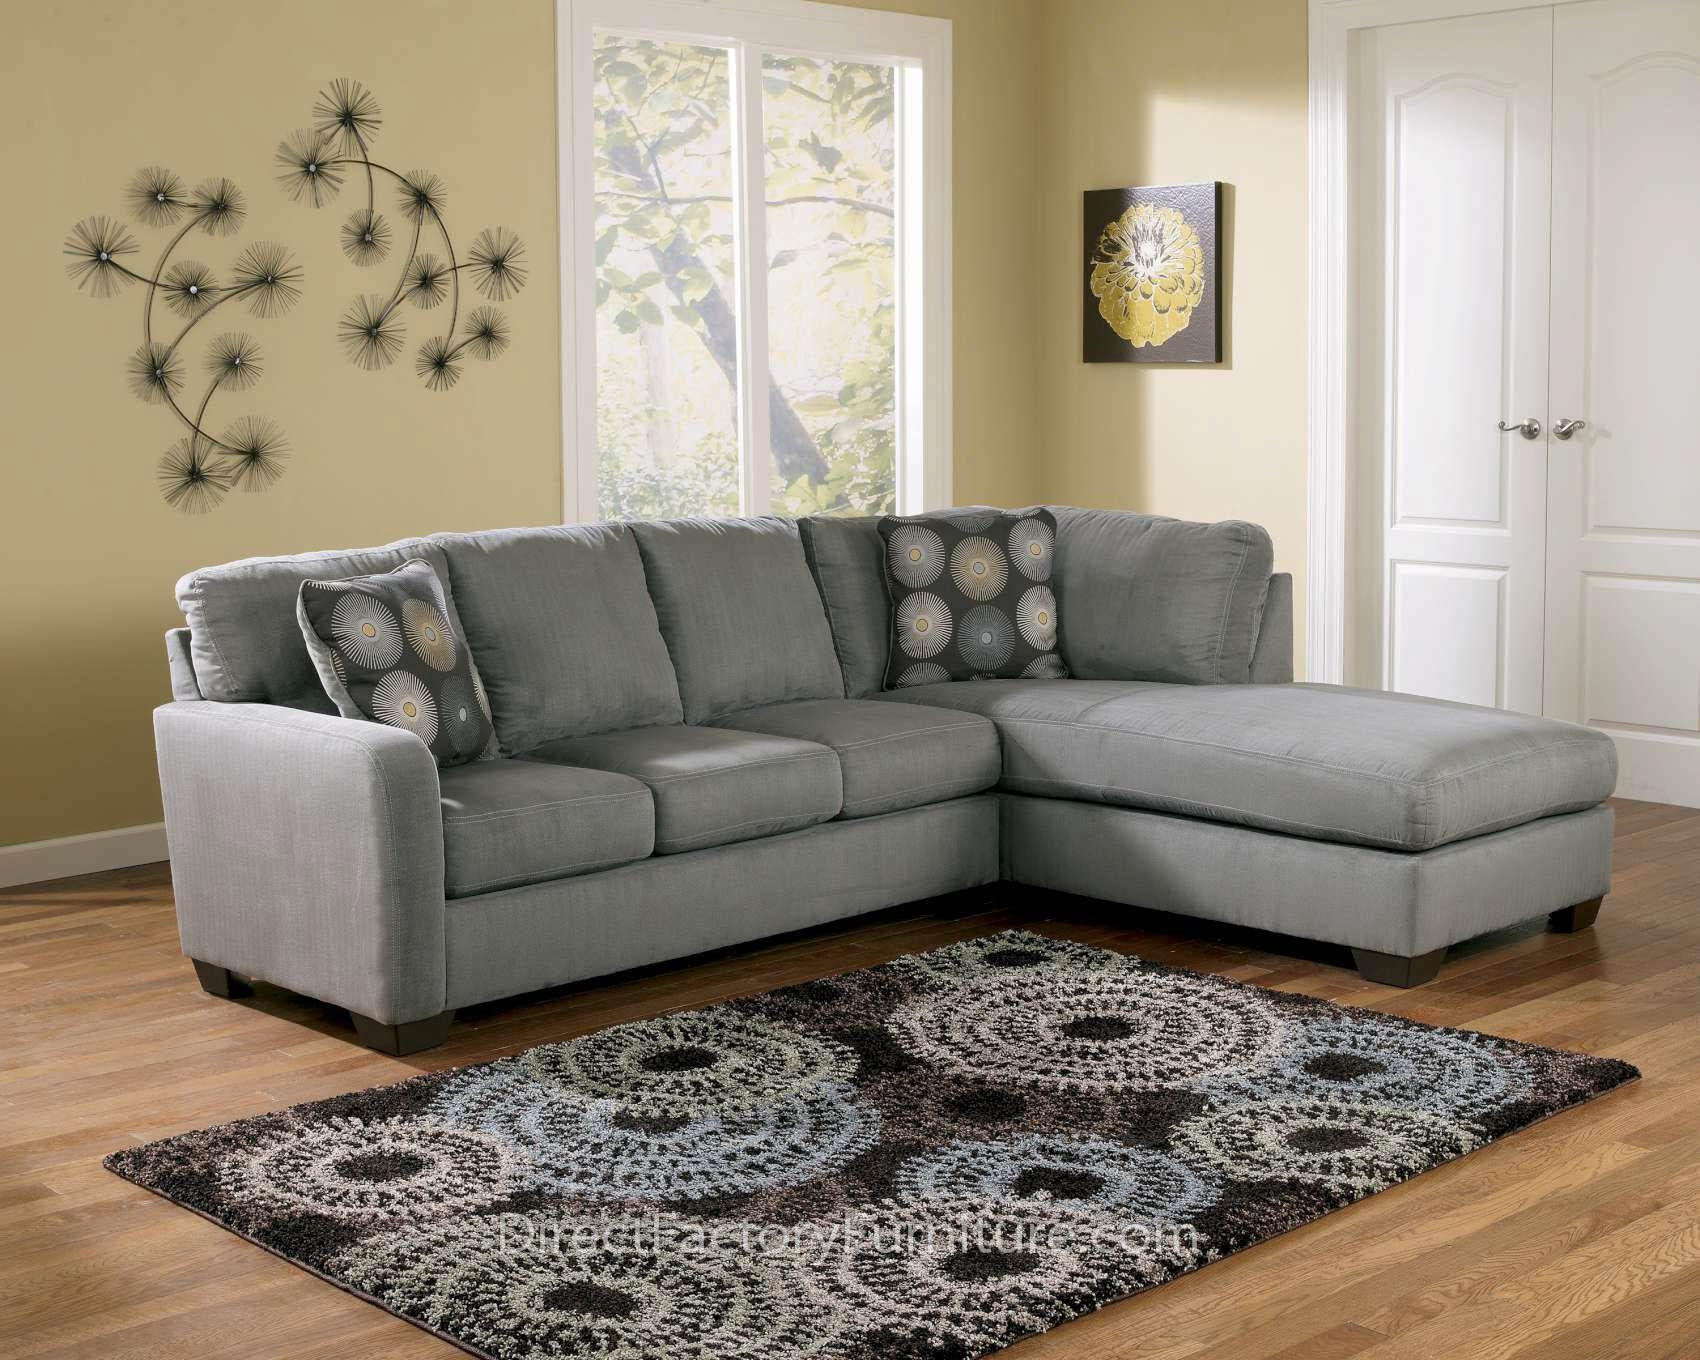 Furniture: Small Sectional Sofas For Small Spaces | Craigslist Throughout Craigslist Sectional Sofas (Image 9 of 20)